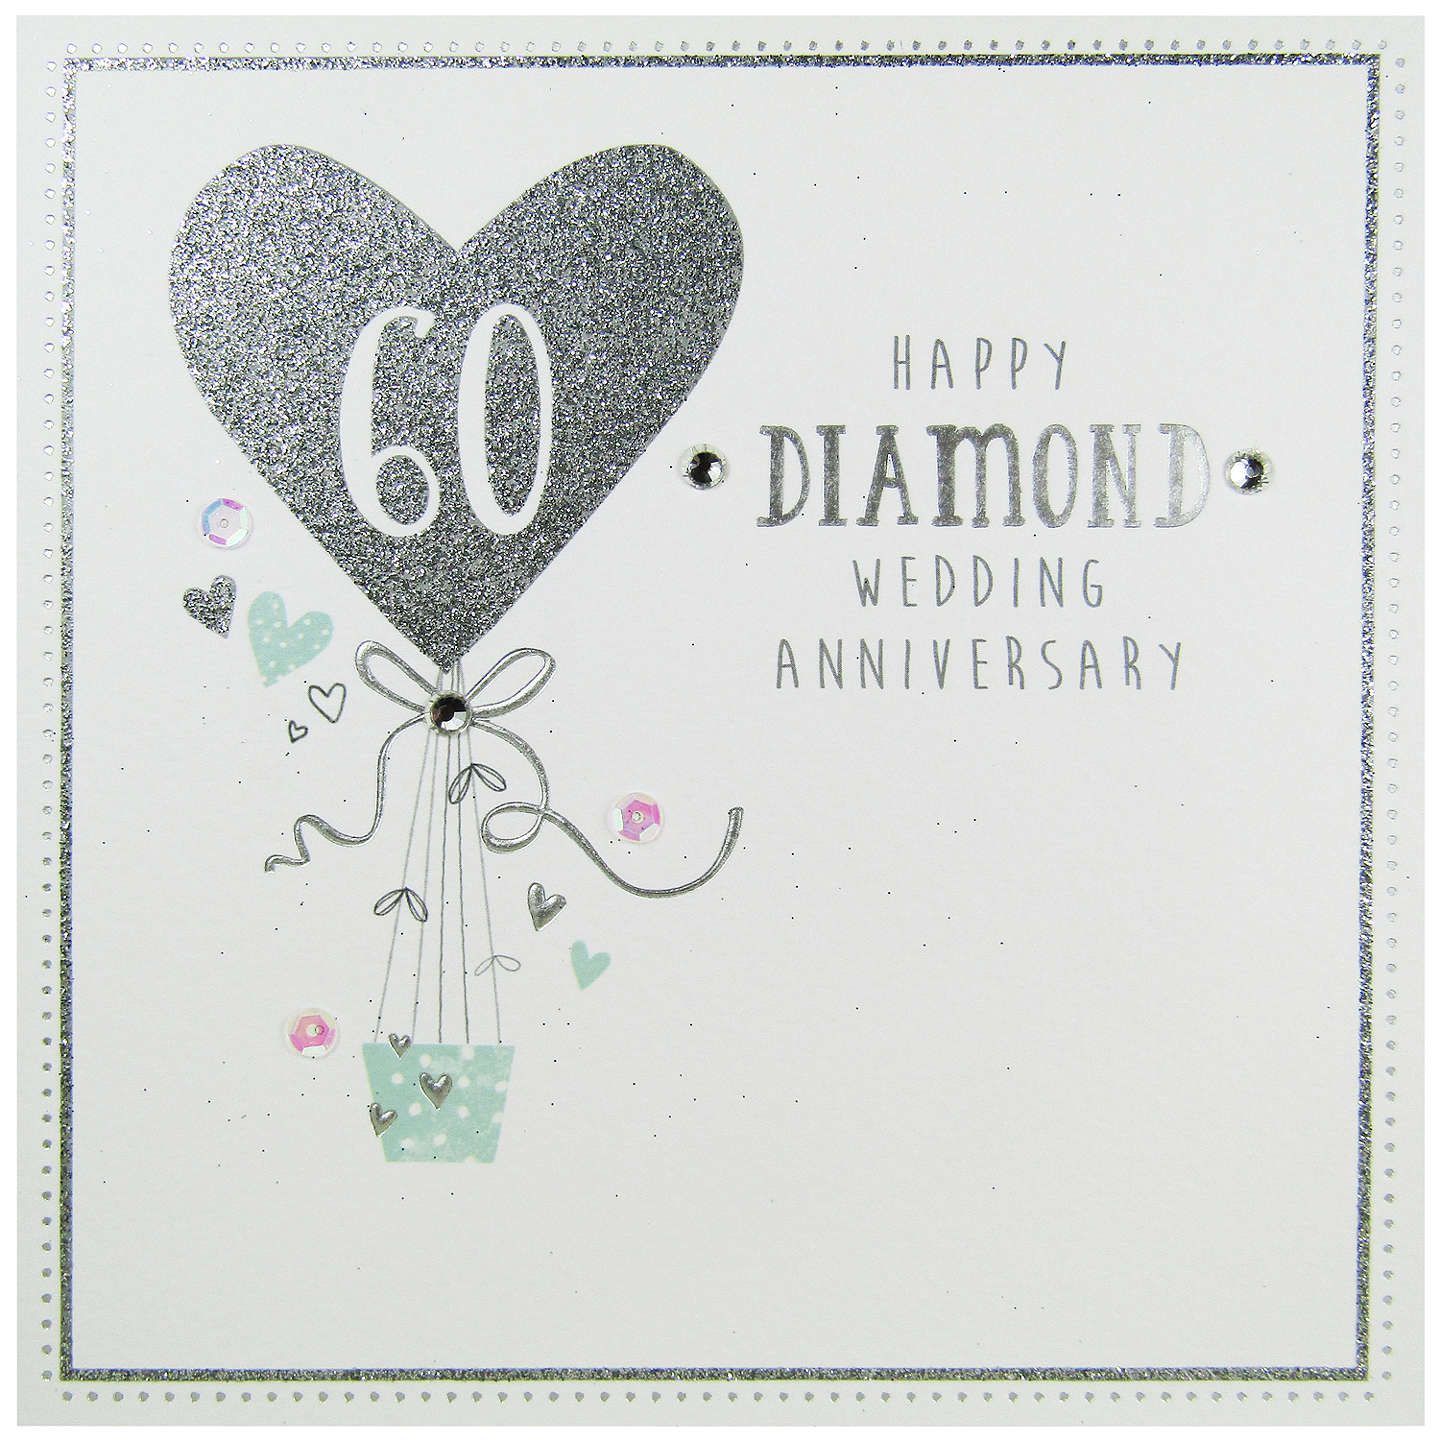 Carte blanche diamond anniversairy greeting card at john lewis buycarte blanche diamond anniversairy greeting card online at johnlewis m4hsunfo